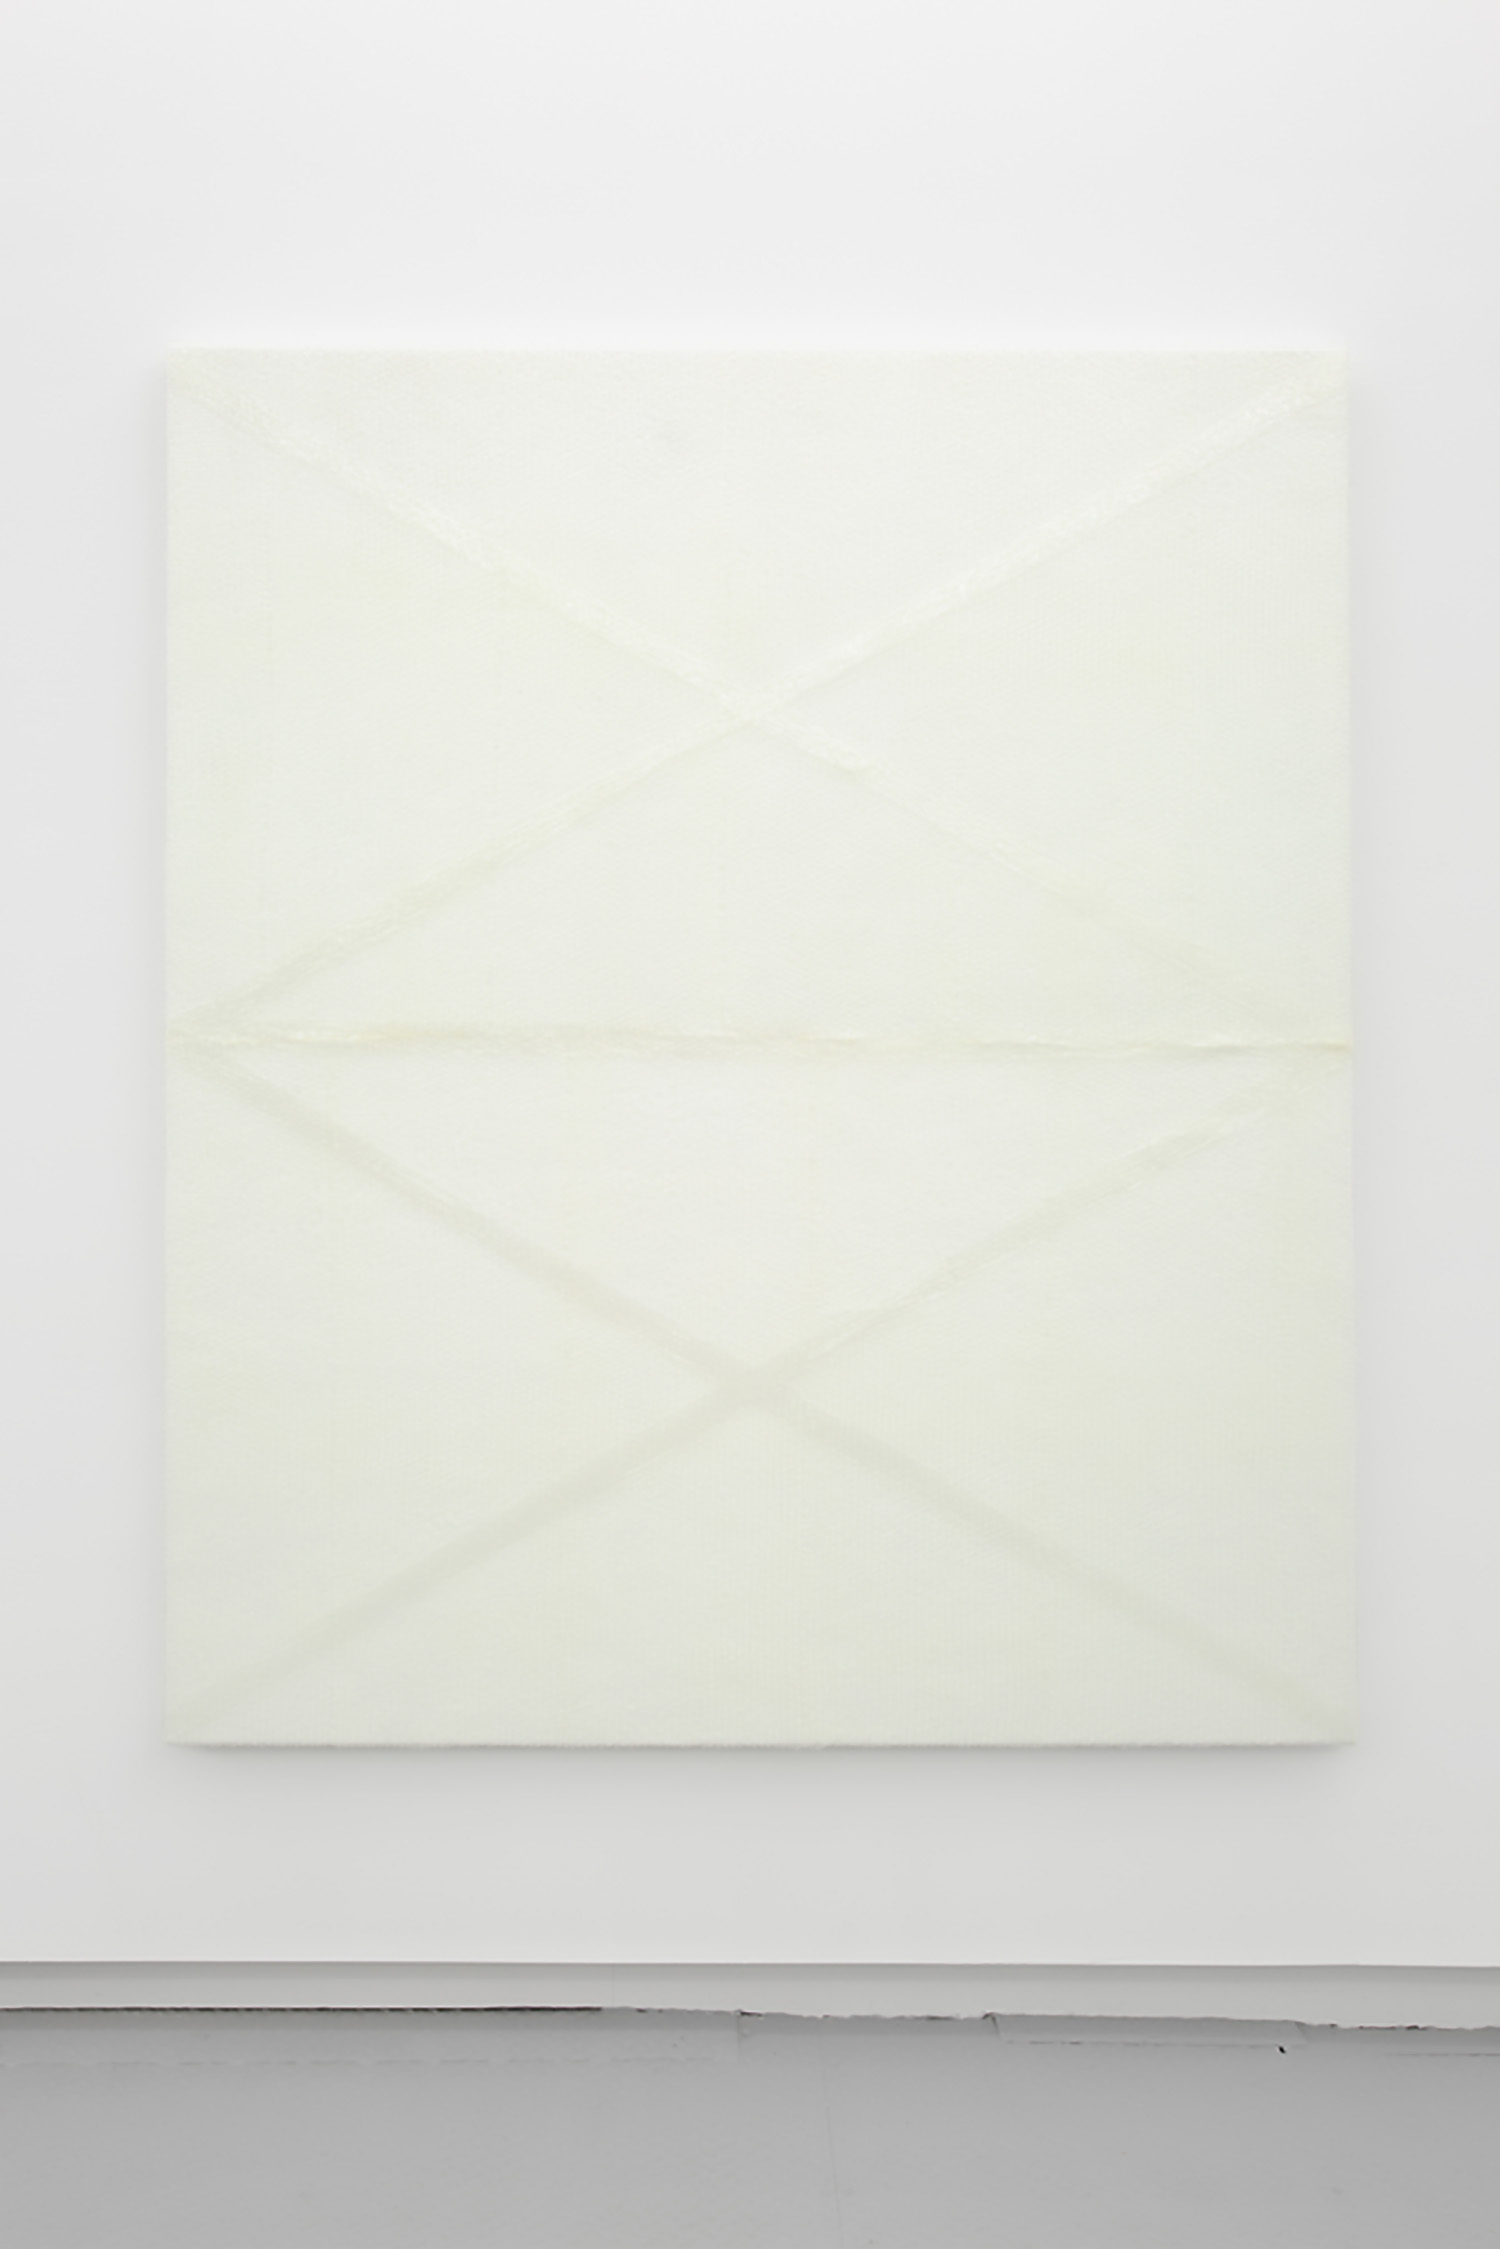 White Monochrome with Bubble Wrap and Packing Tape , 2017, Acrylic on canvas, 60'' x 86'' x 1 ½''